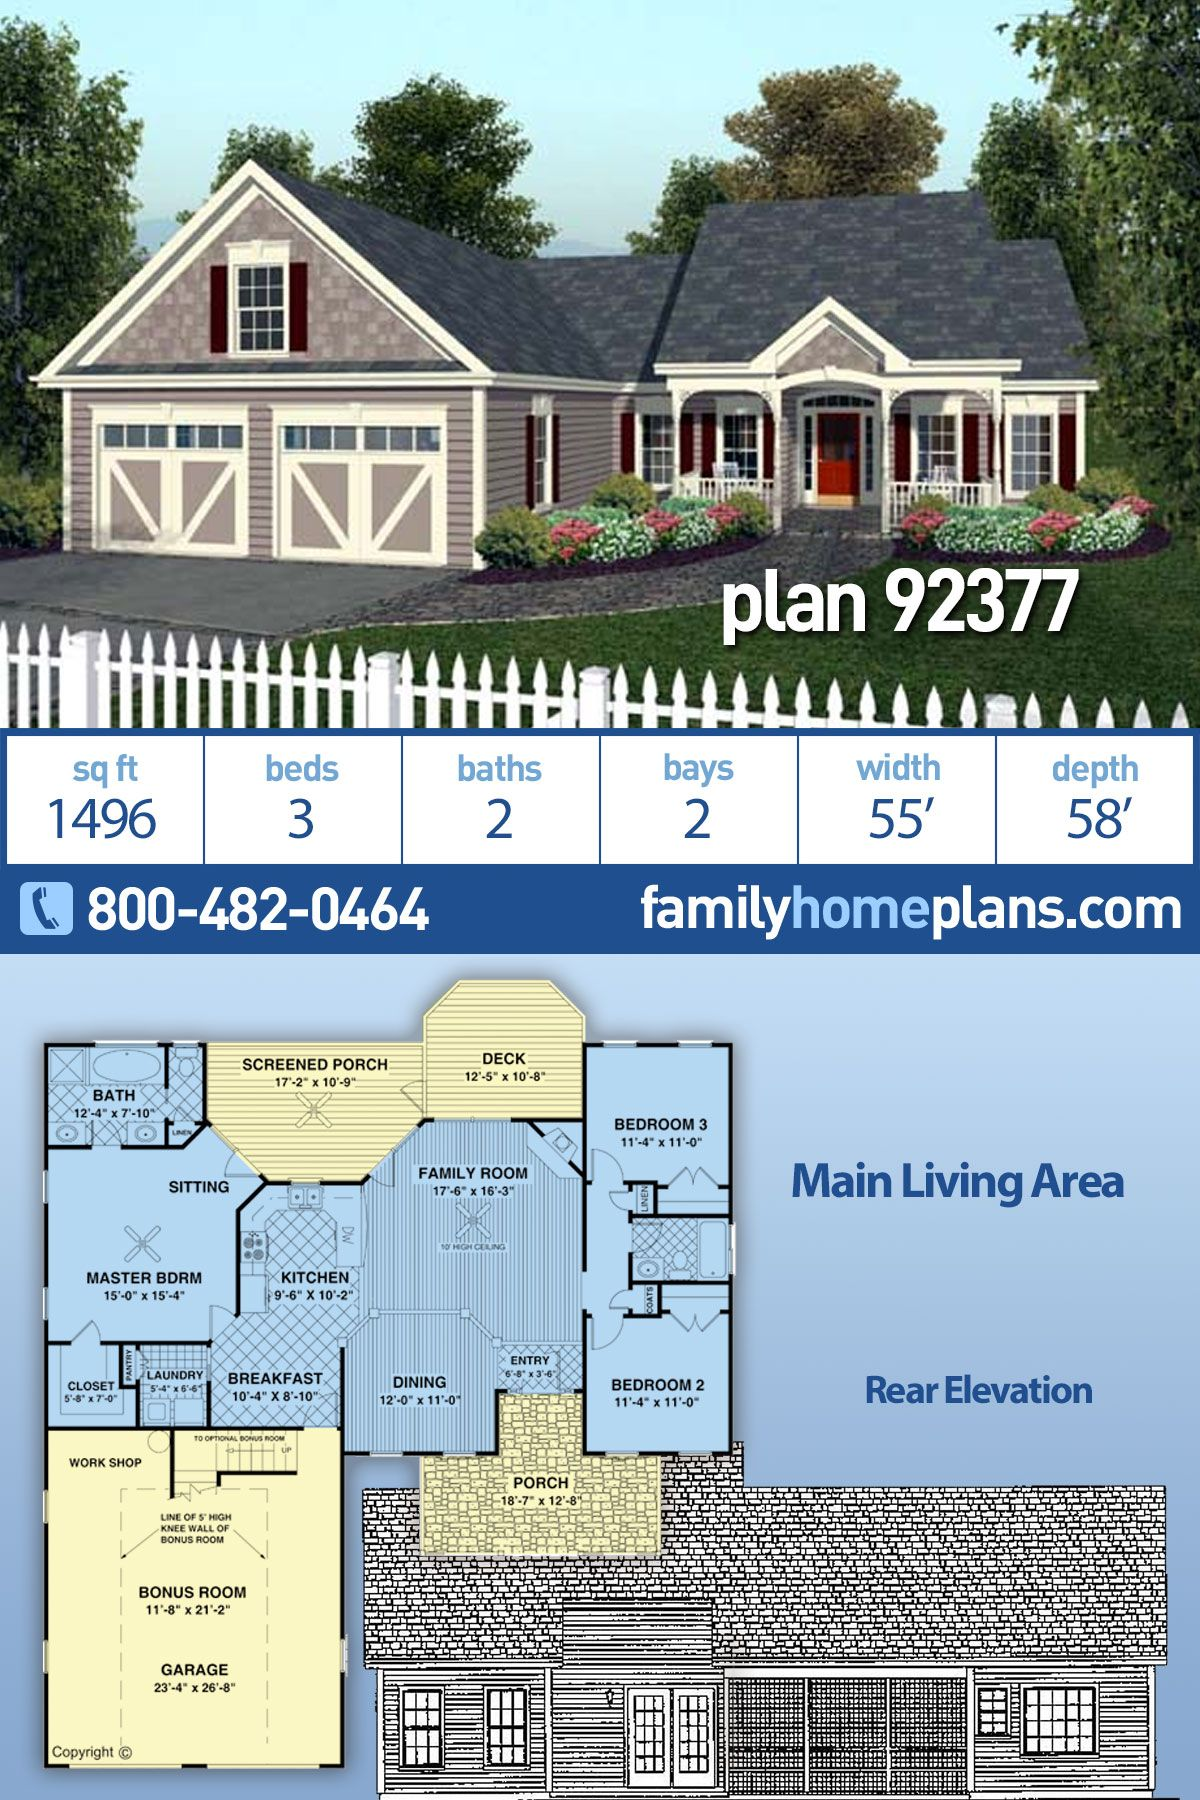 Traditional Style House Plan 92377 With 3 Bed 2 Bath 2 Car Garage Country Cottage House Plans Cottage House Plans House Plans